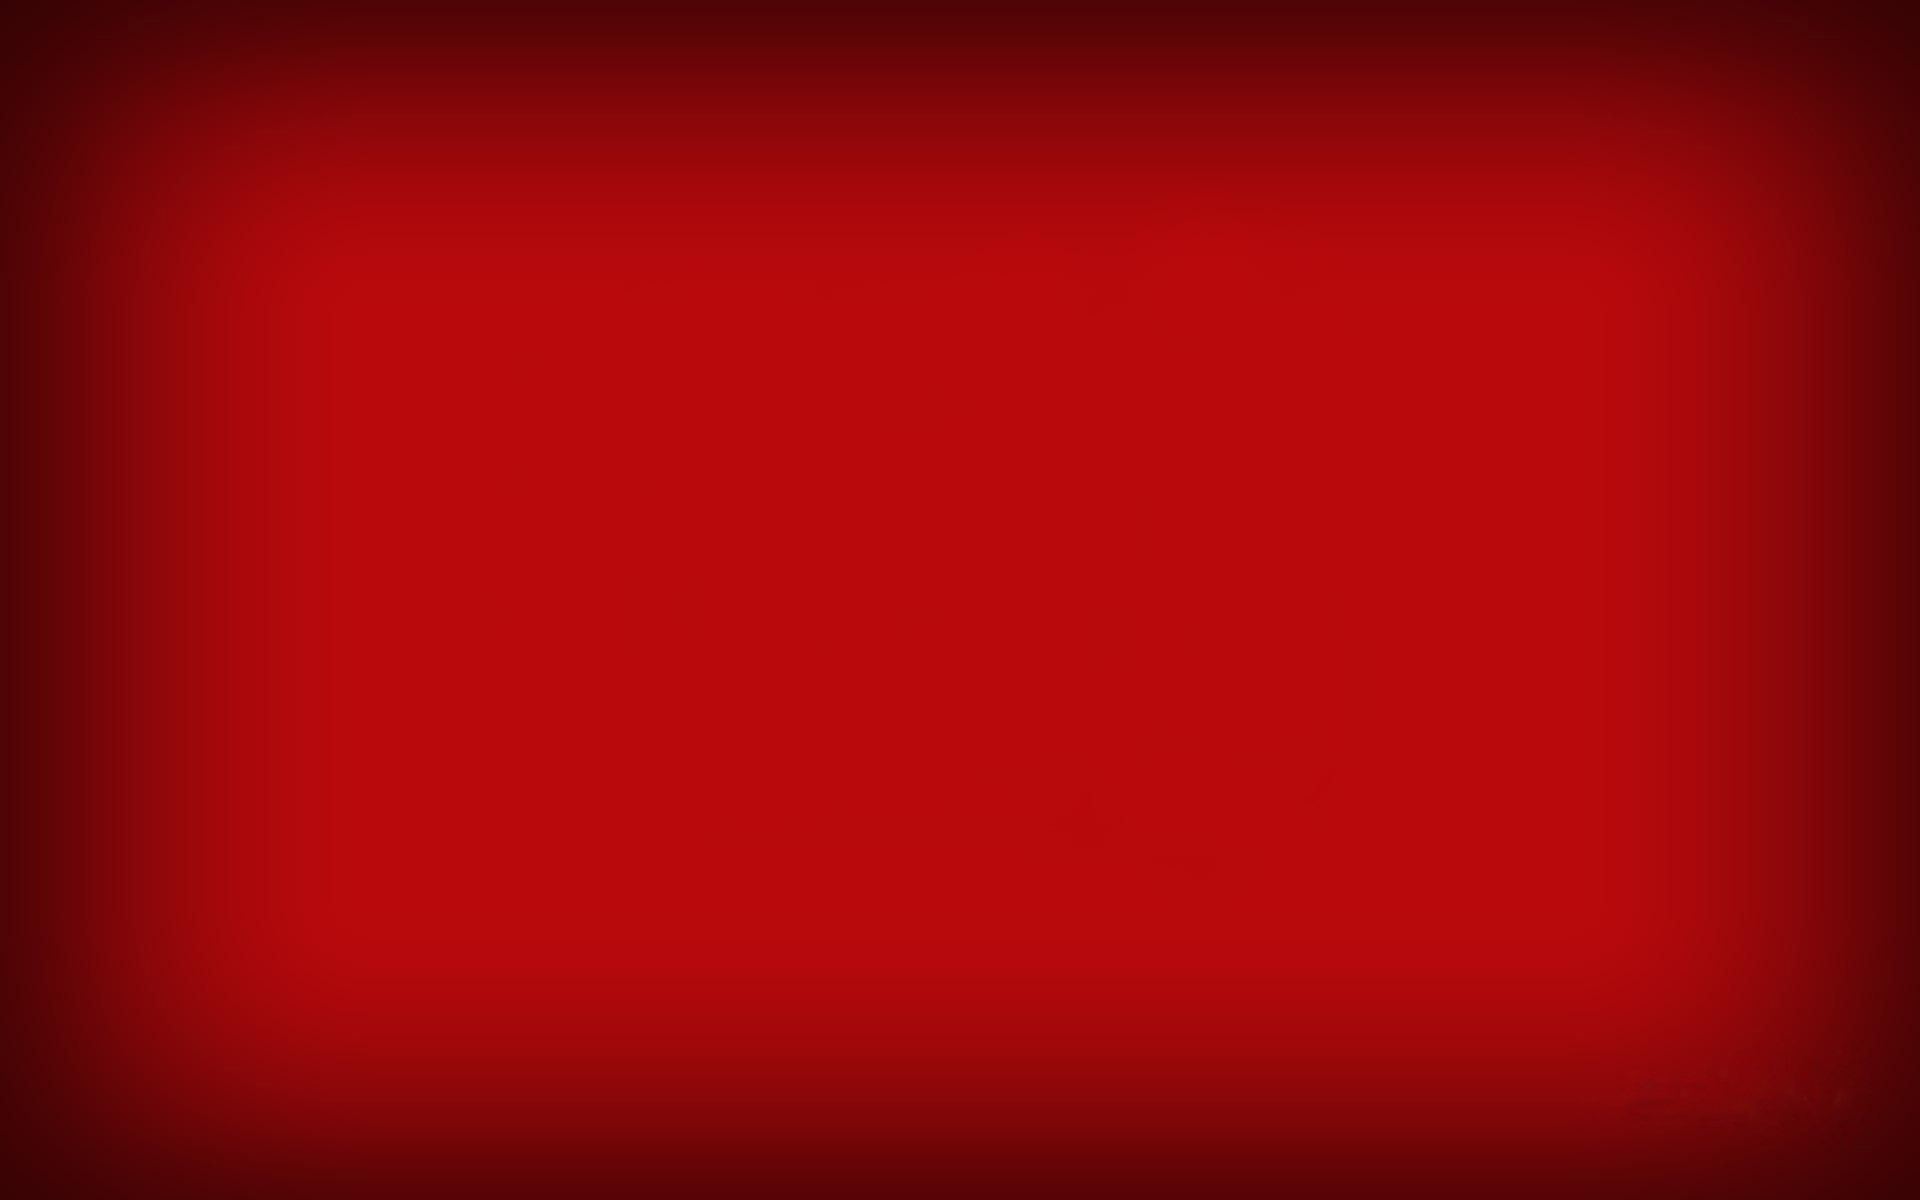 Windows 7 Solid Color Background Red Computer Wallpaper Solid Red